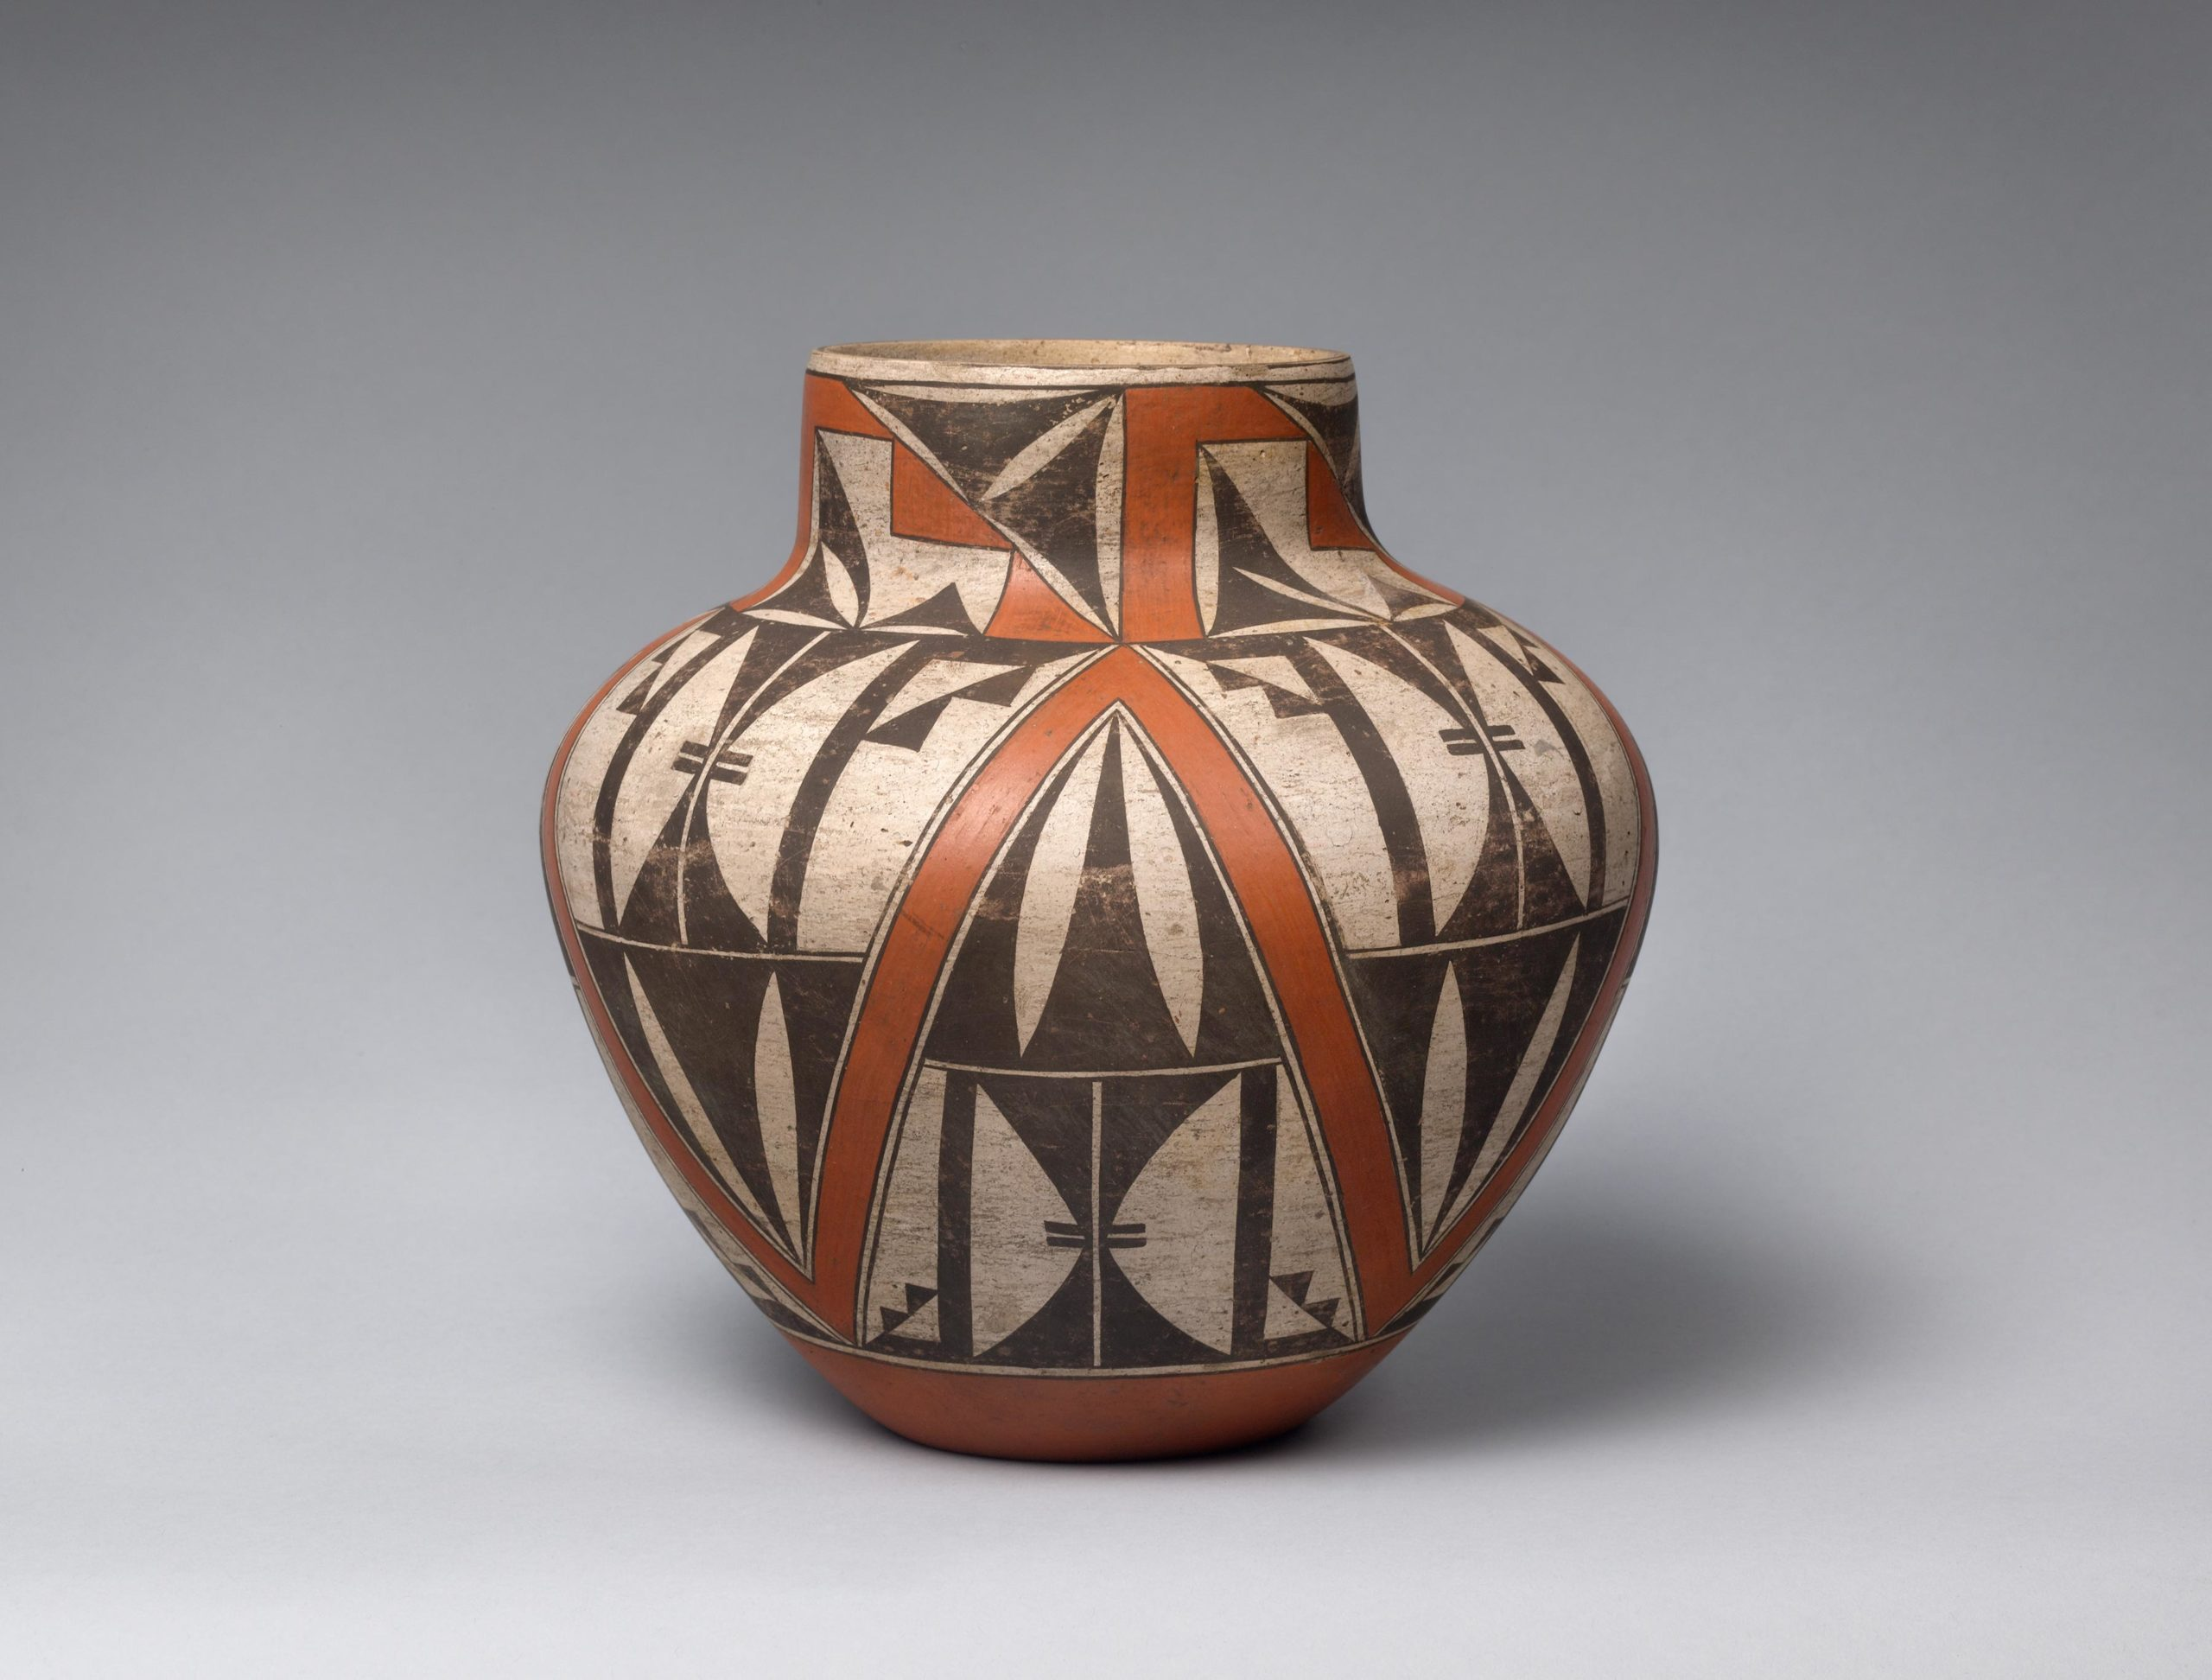 Rust-orange Acoma pot with a black and white geometric design.